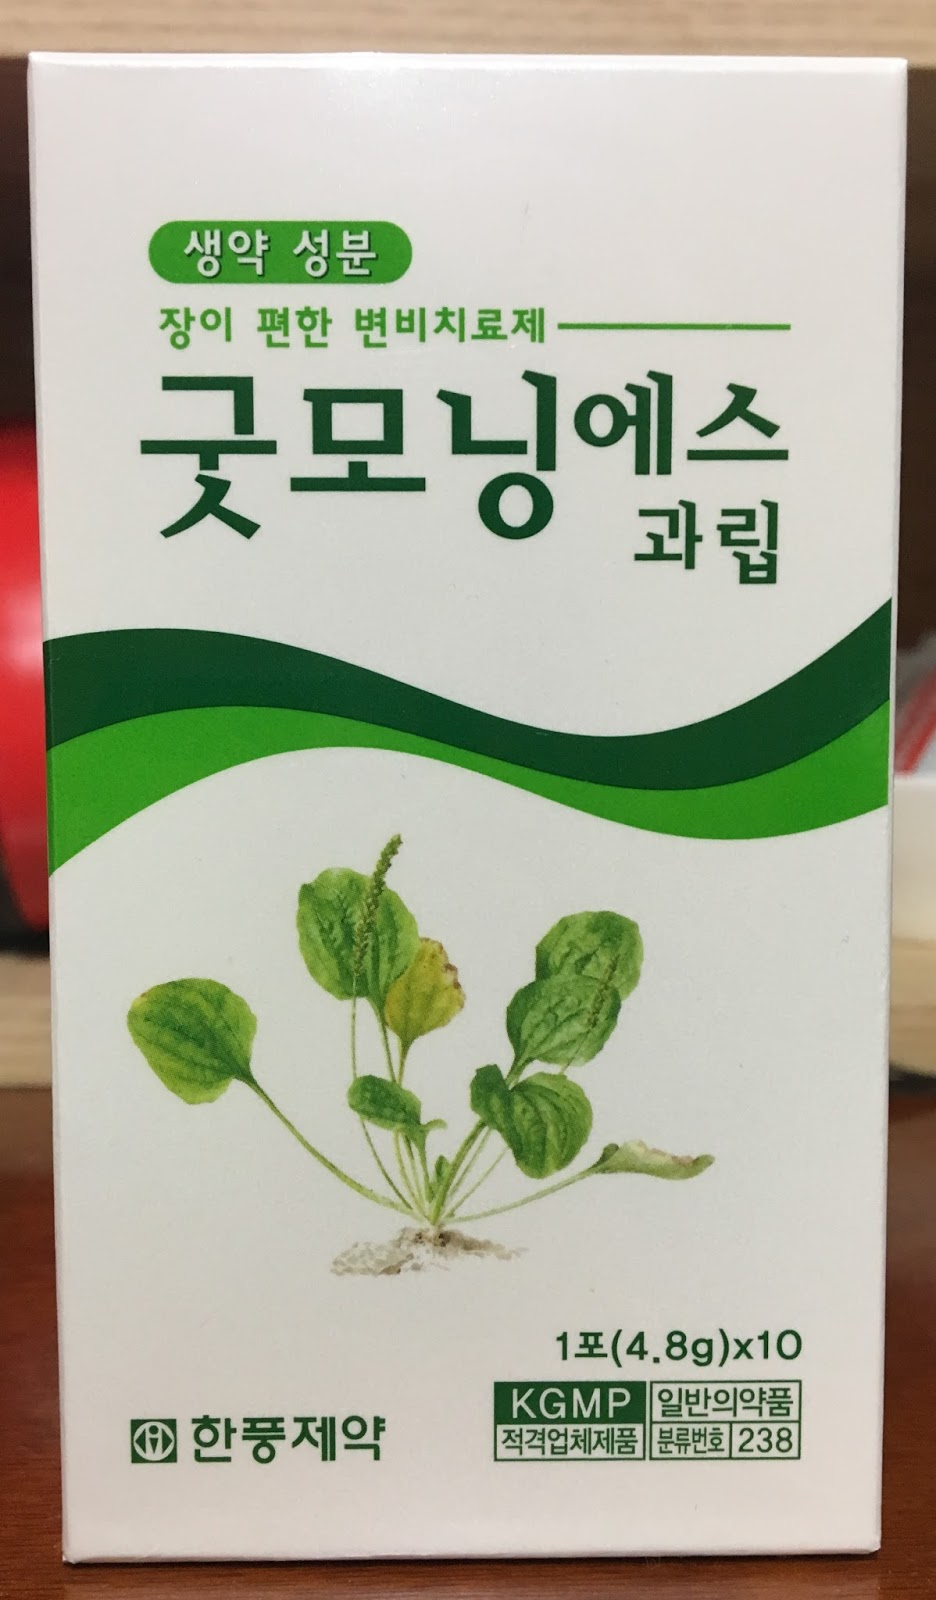 Good Morning In Korean Hangul : Quot good morning s 굿모닝에스 korean laxative is seriously awesome